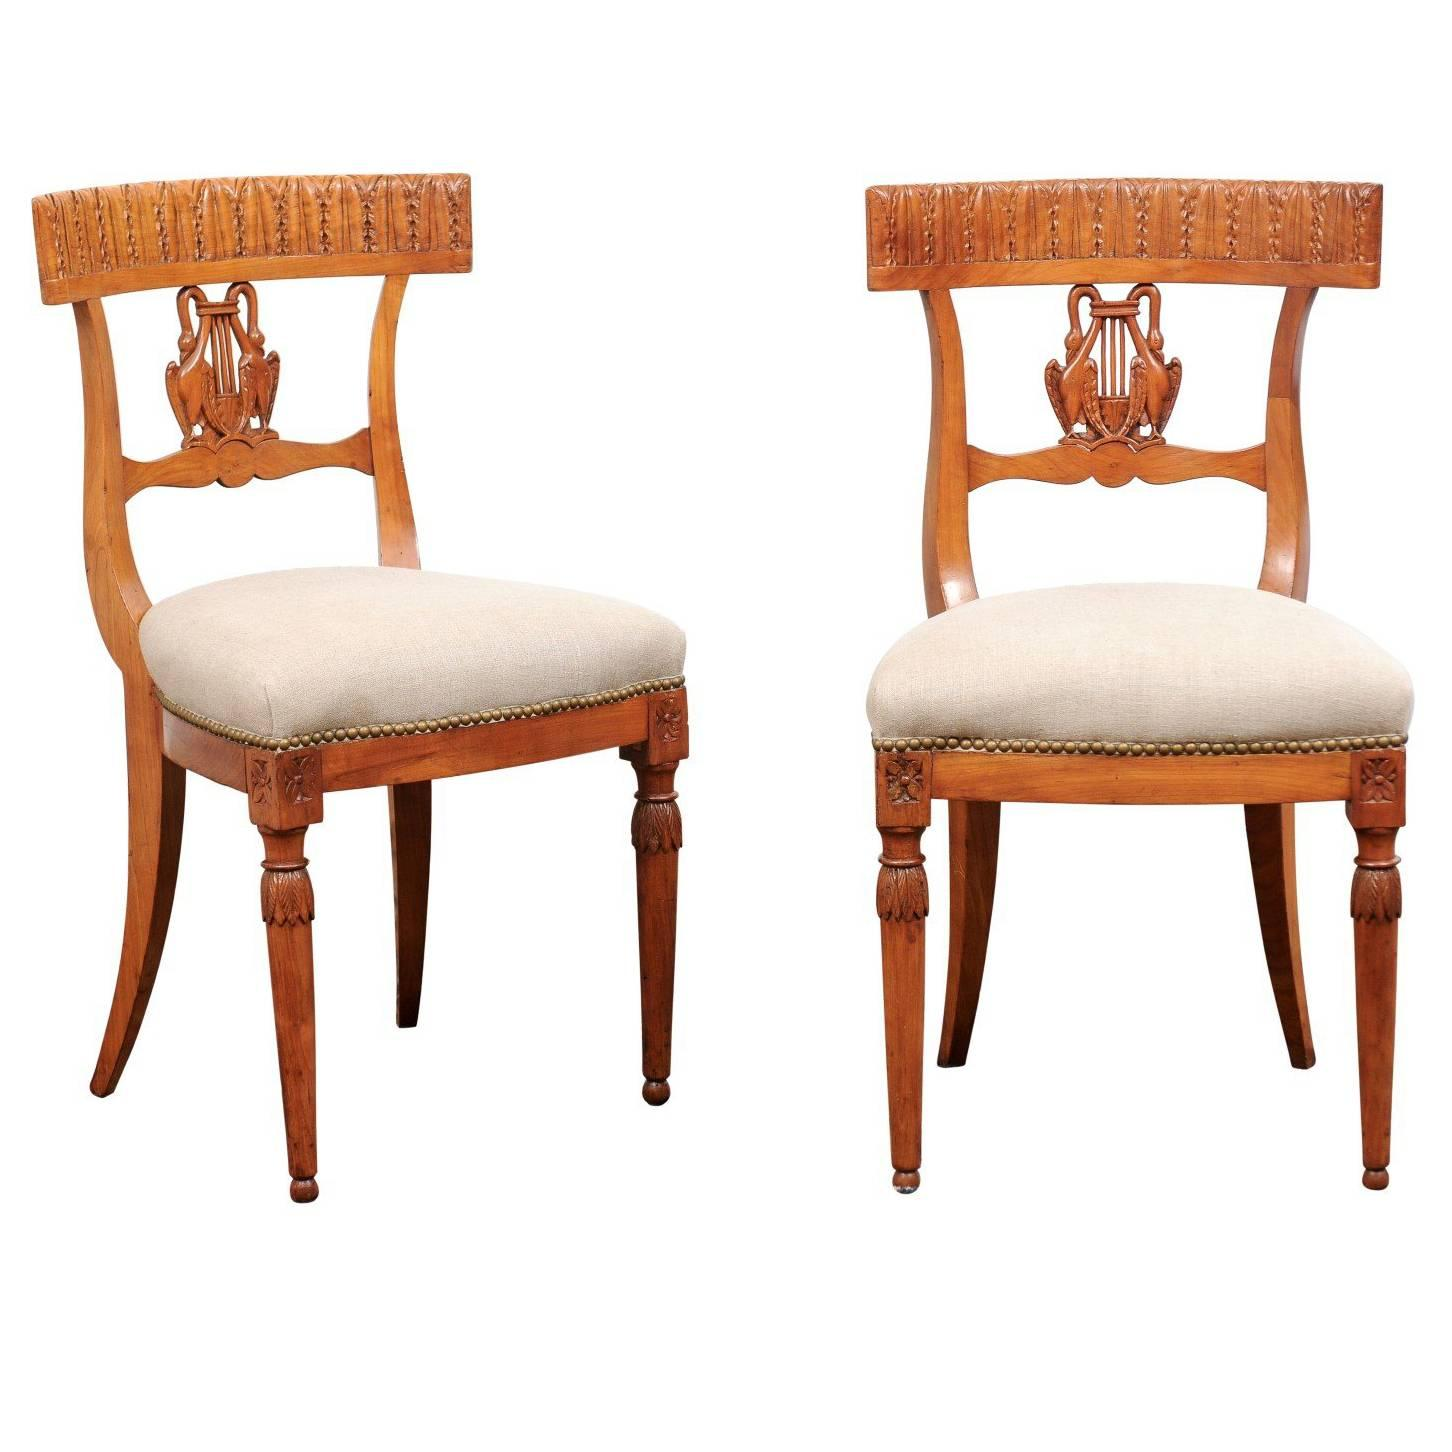 Merveilleux Pair Of Italian Neoclassical Side Chairs With Swans And Lyre From The 1850s